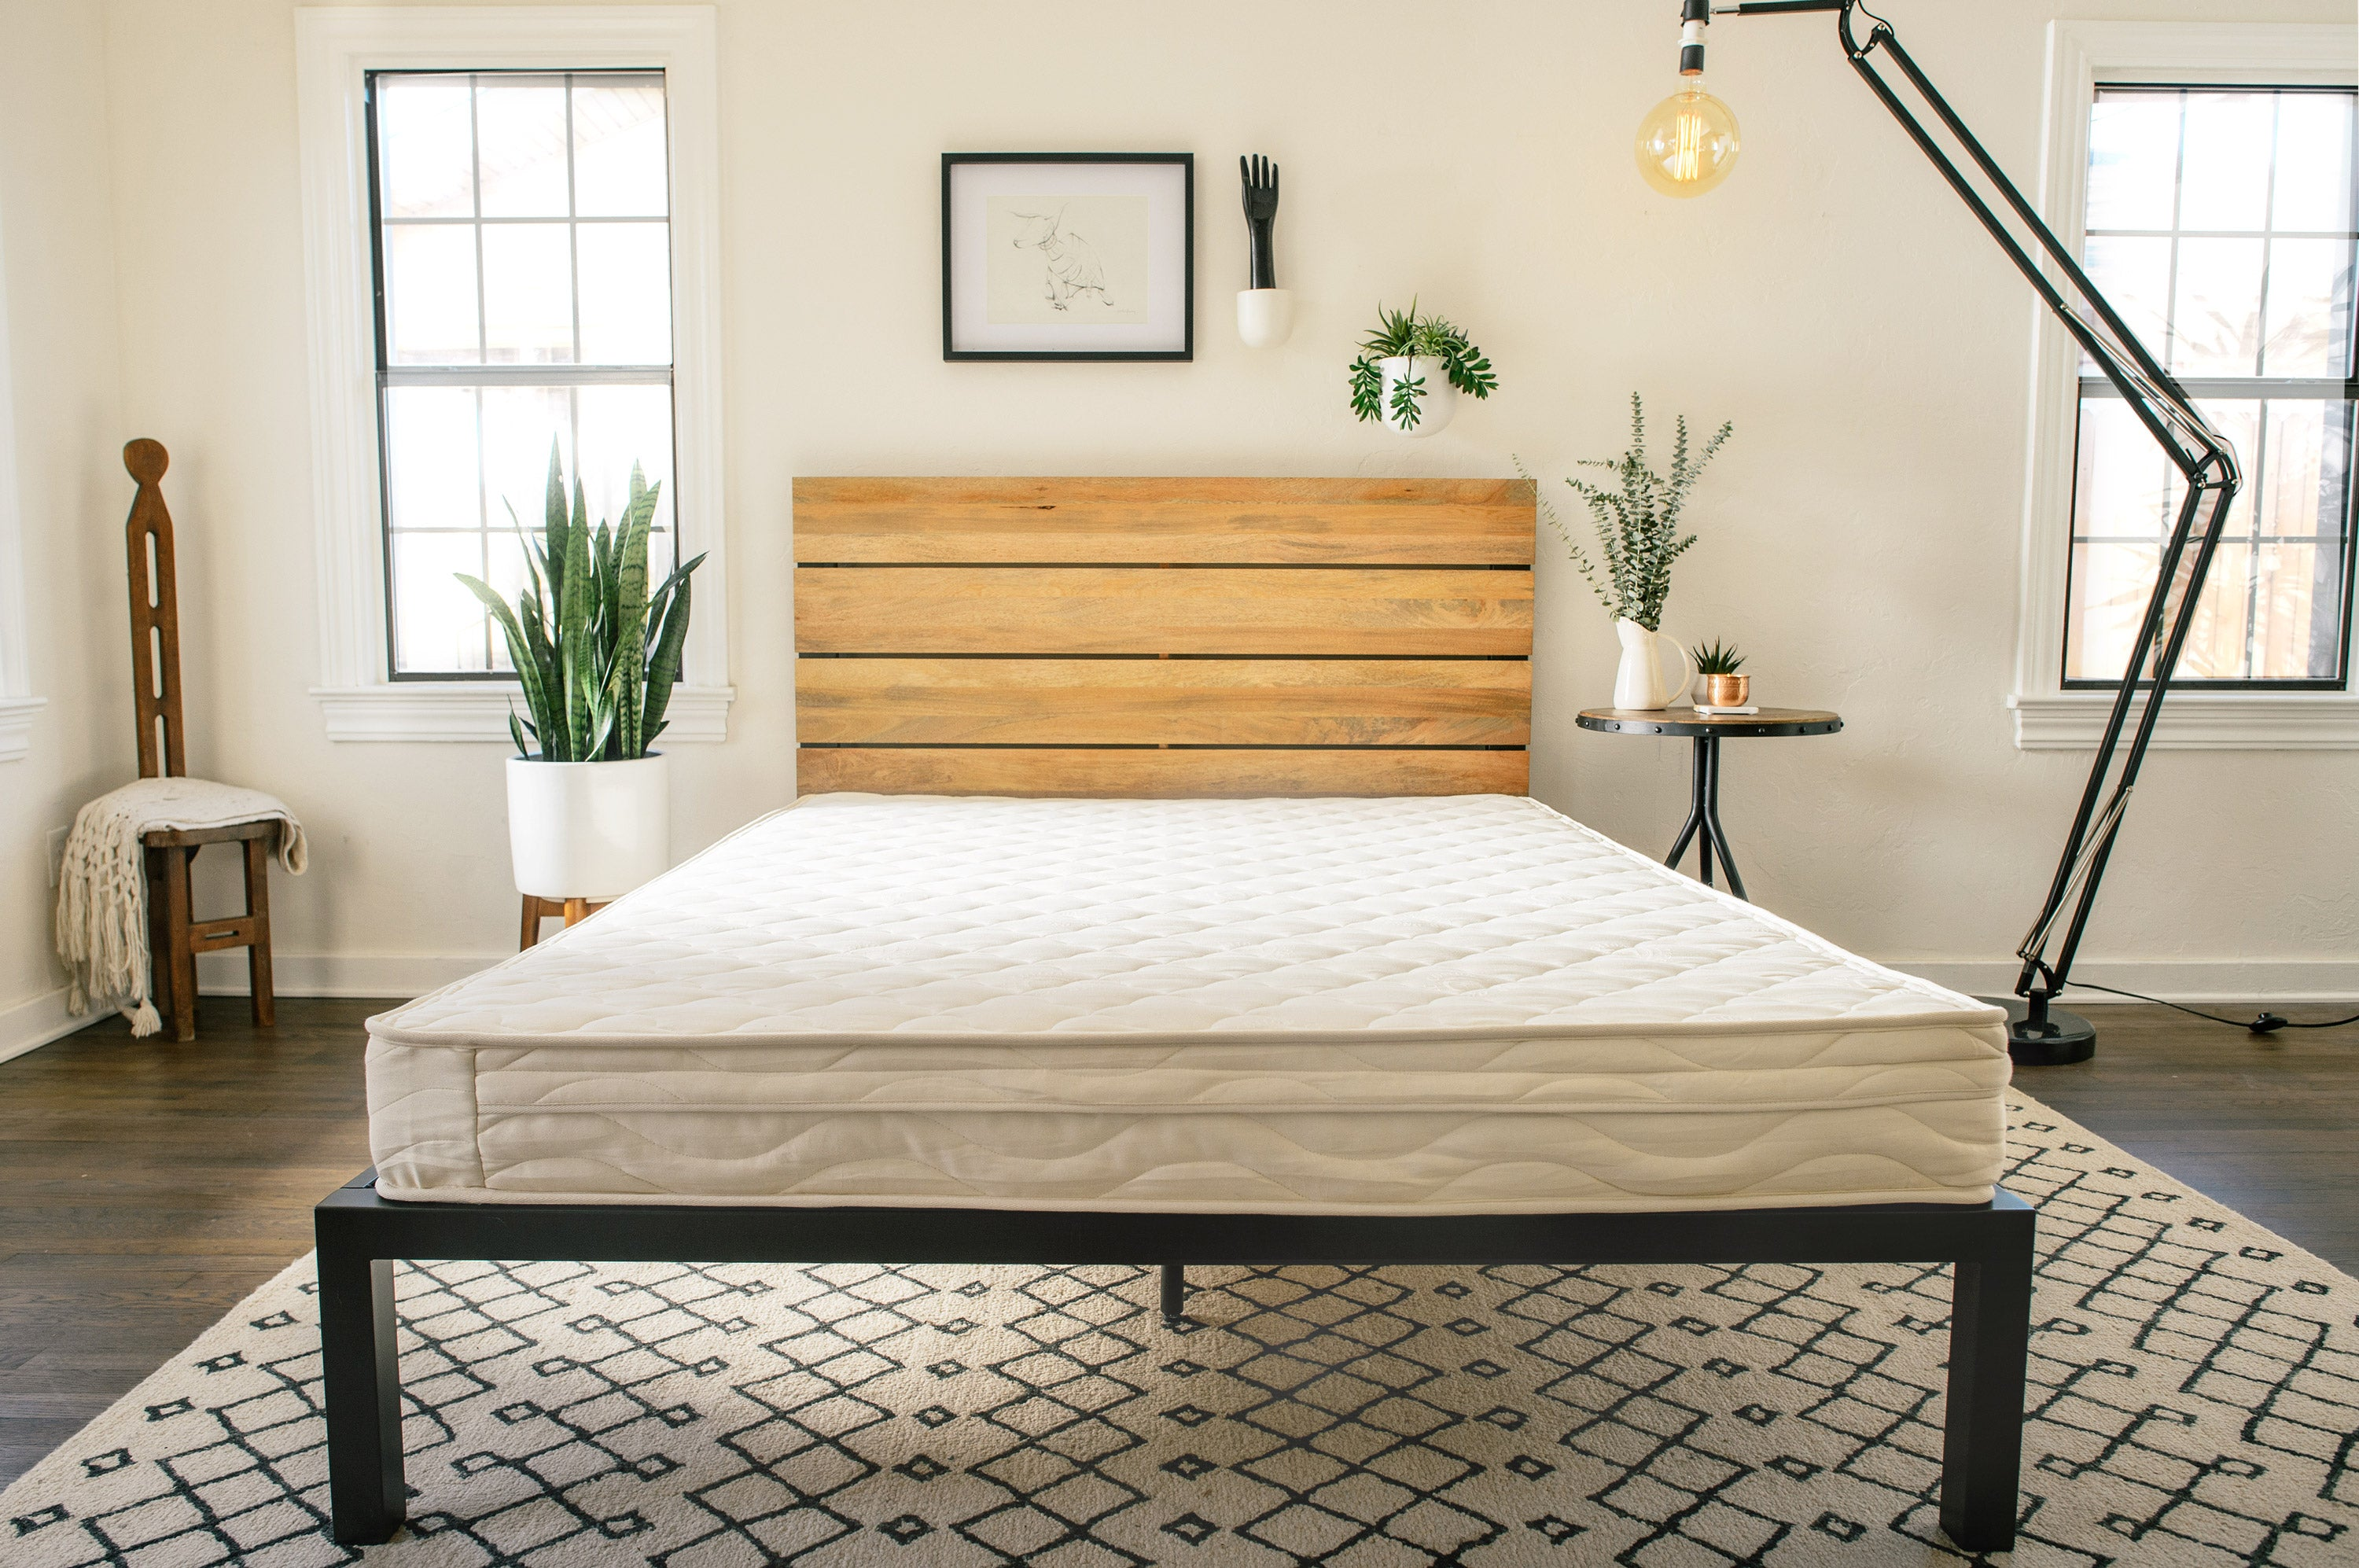 mattresses buy zippered original ideas wrapping mattress to bug blocker related protector walmart best unique time new bed